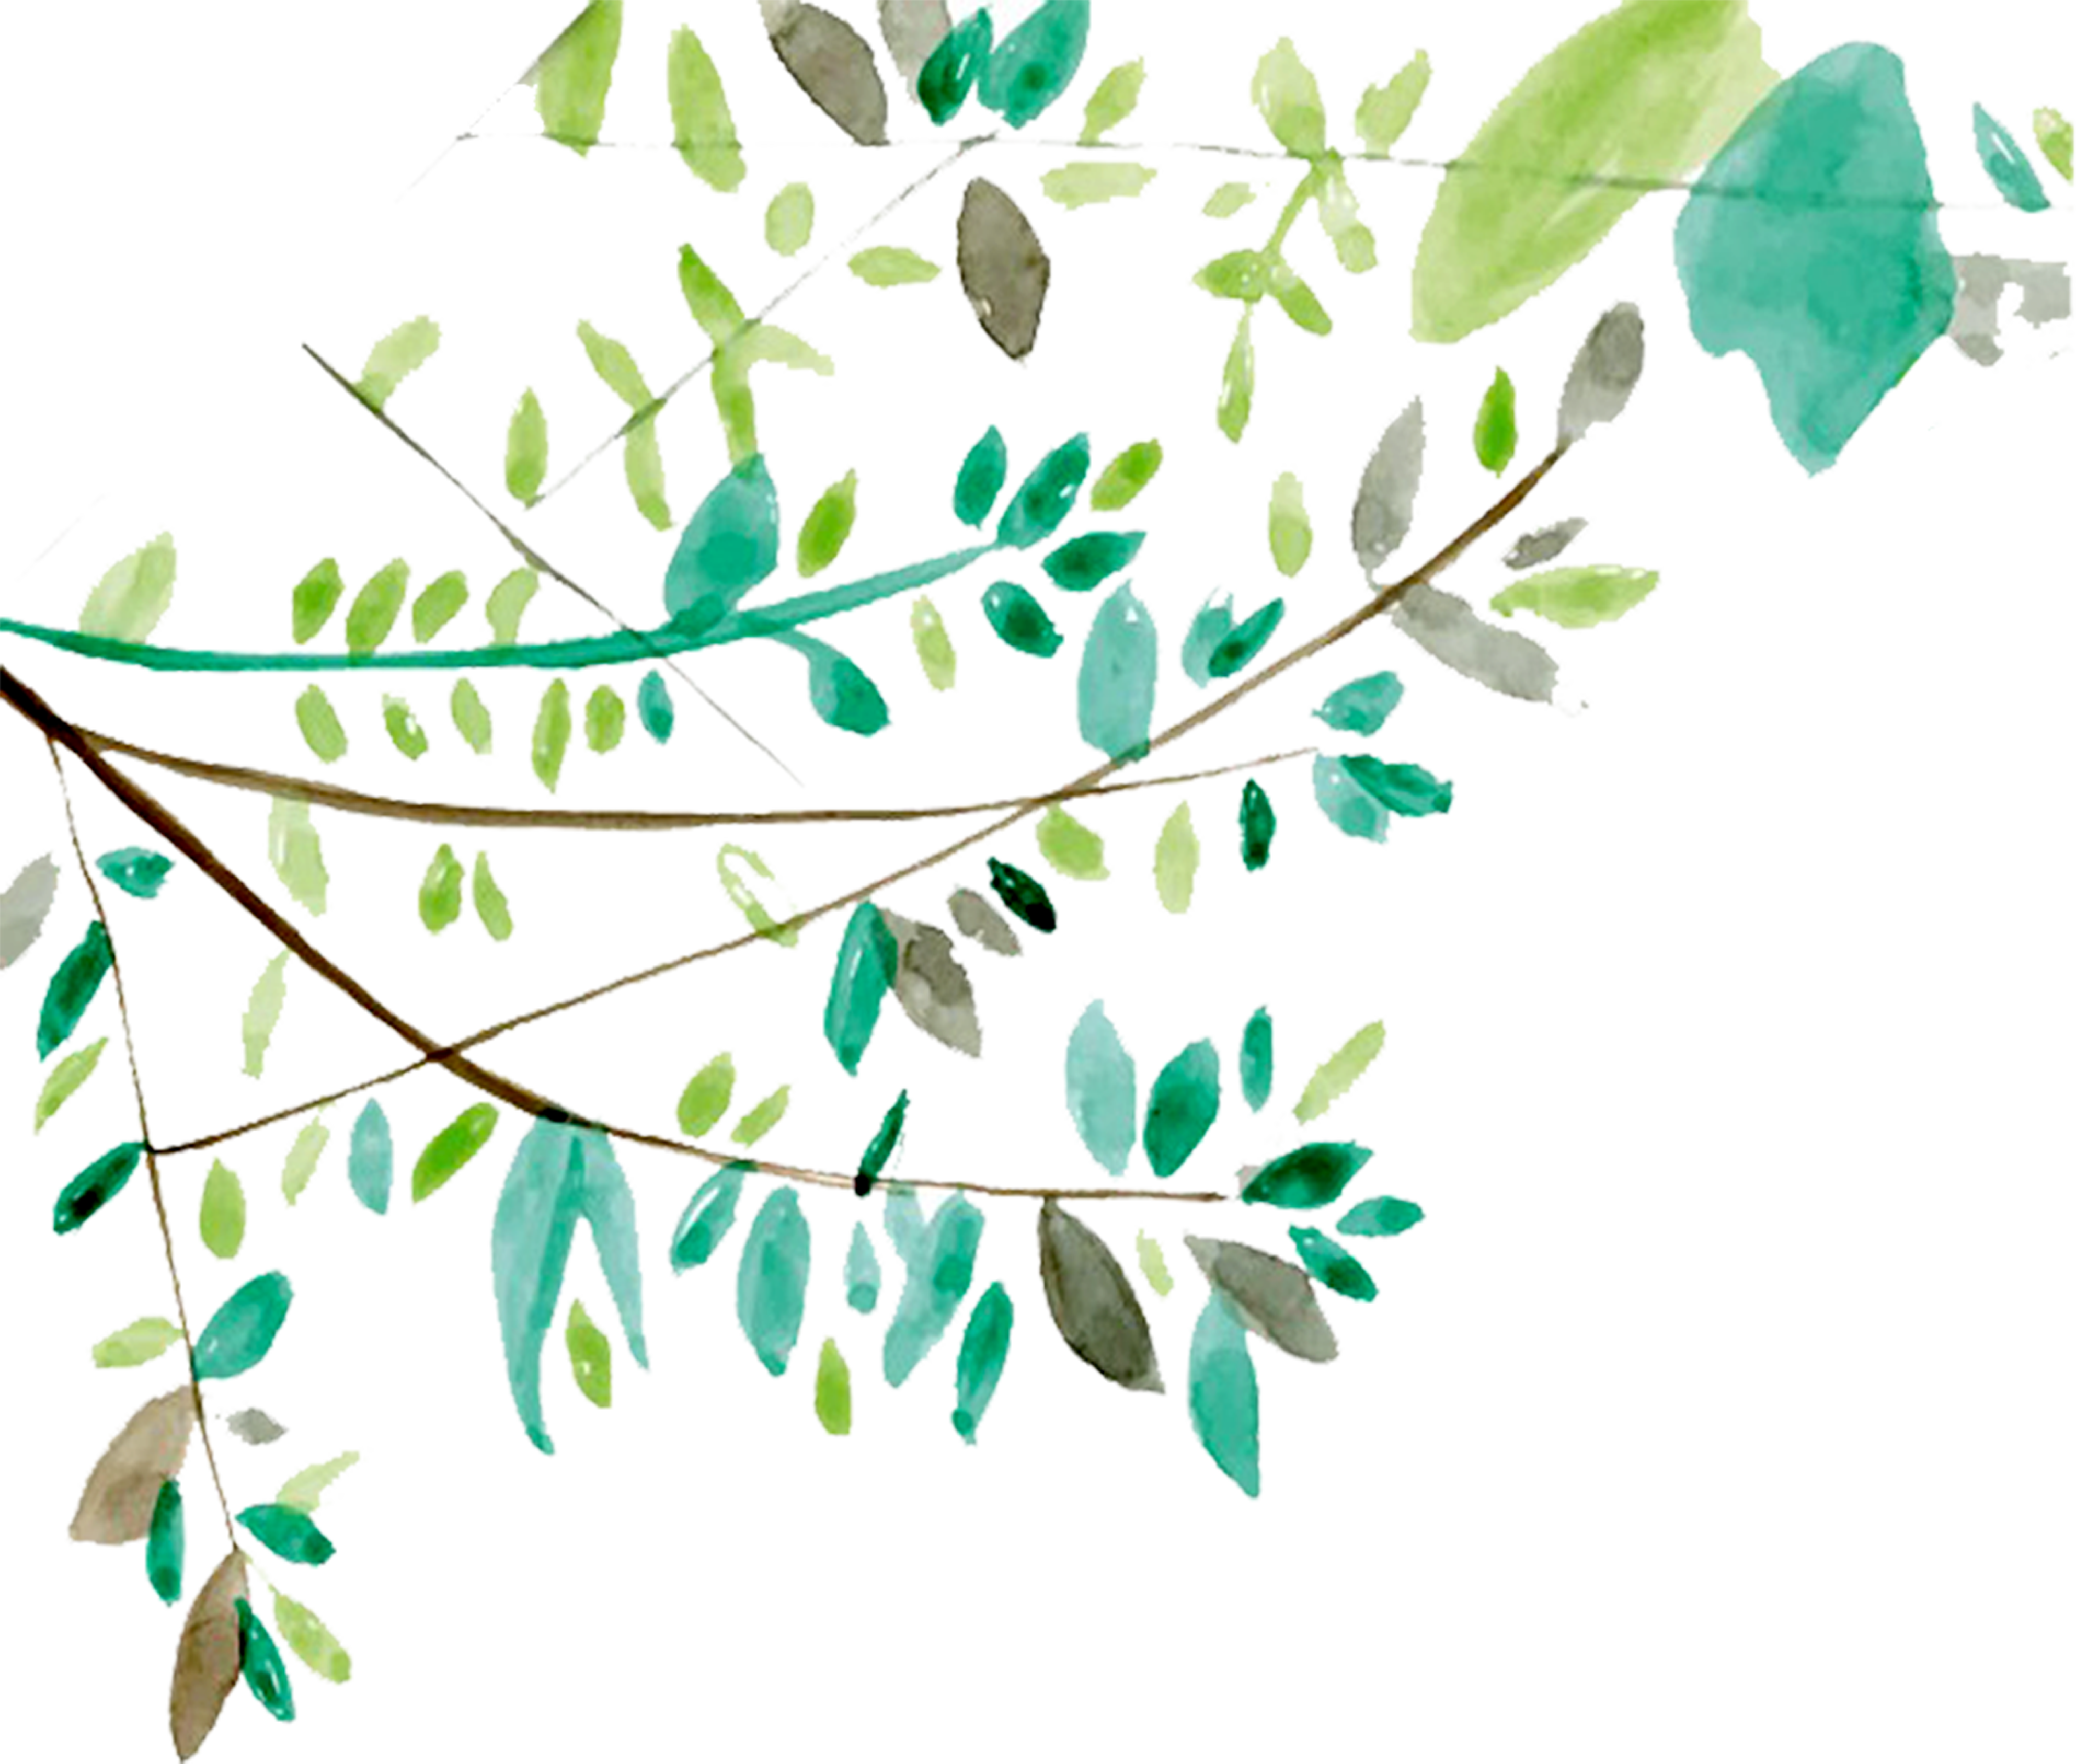 3971x3375 19 Vector Ai Tree Branch Huge Freebie! Download For Powerpoint